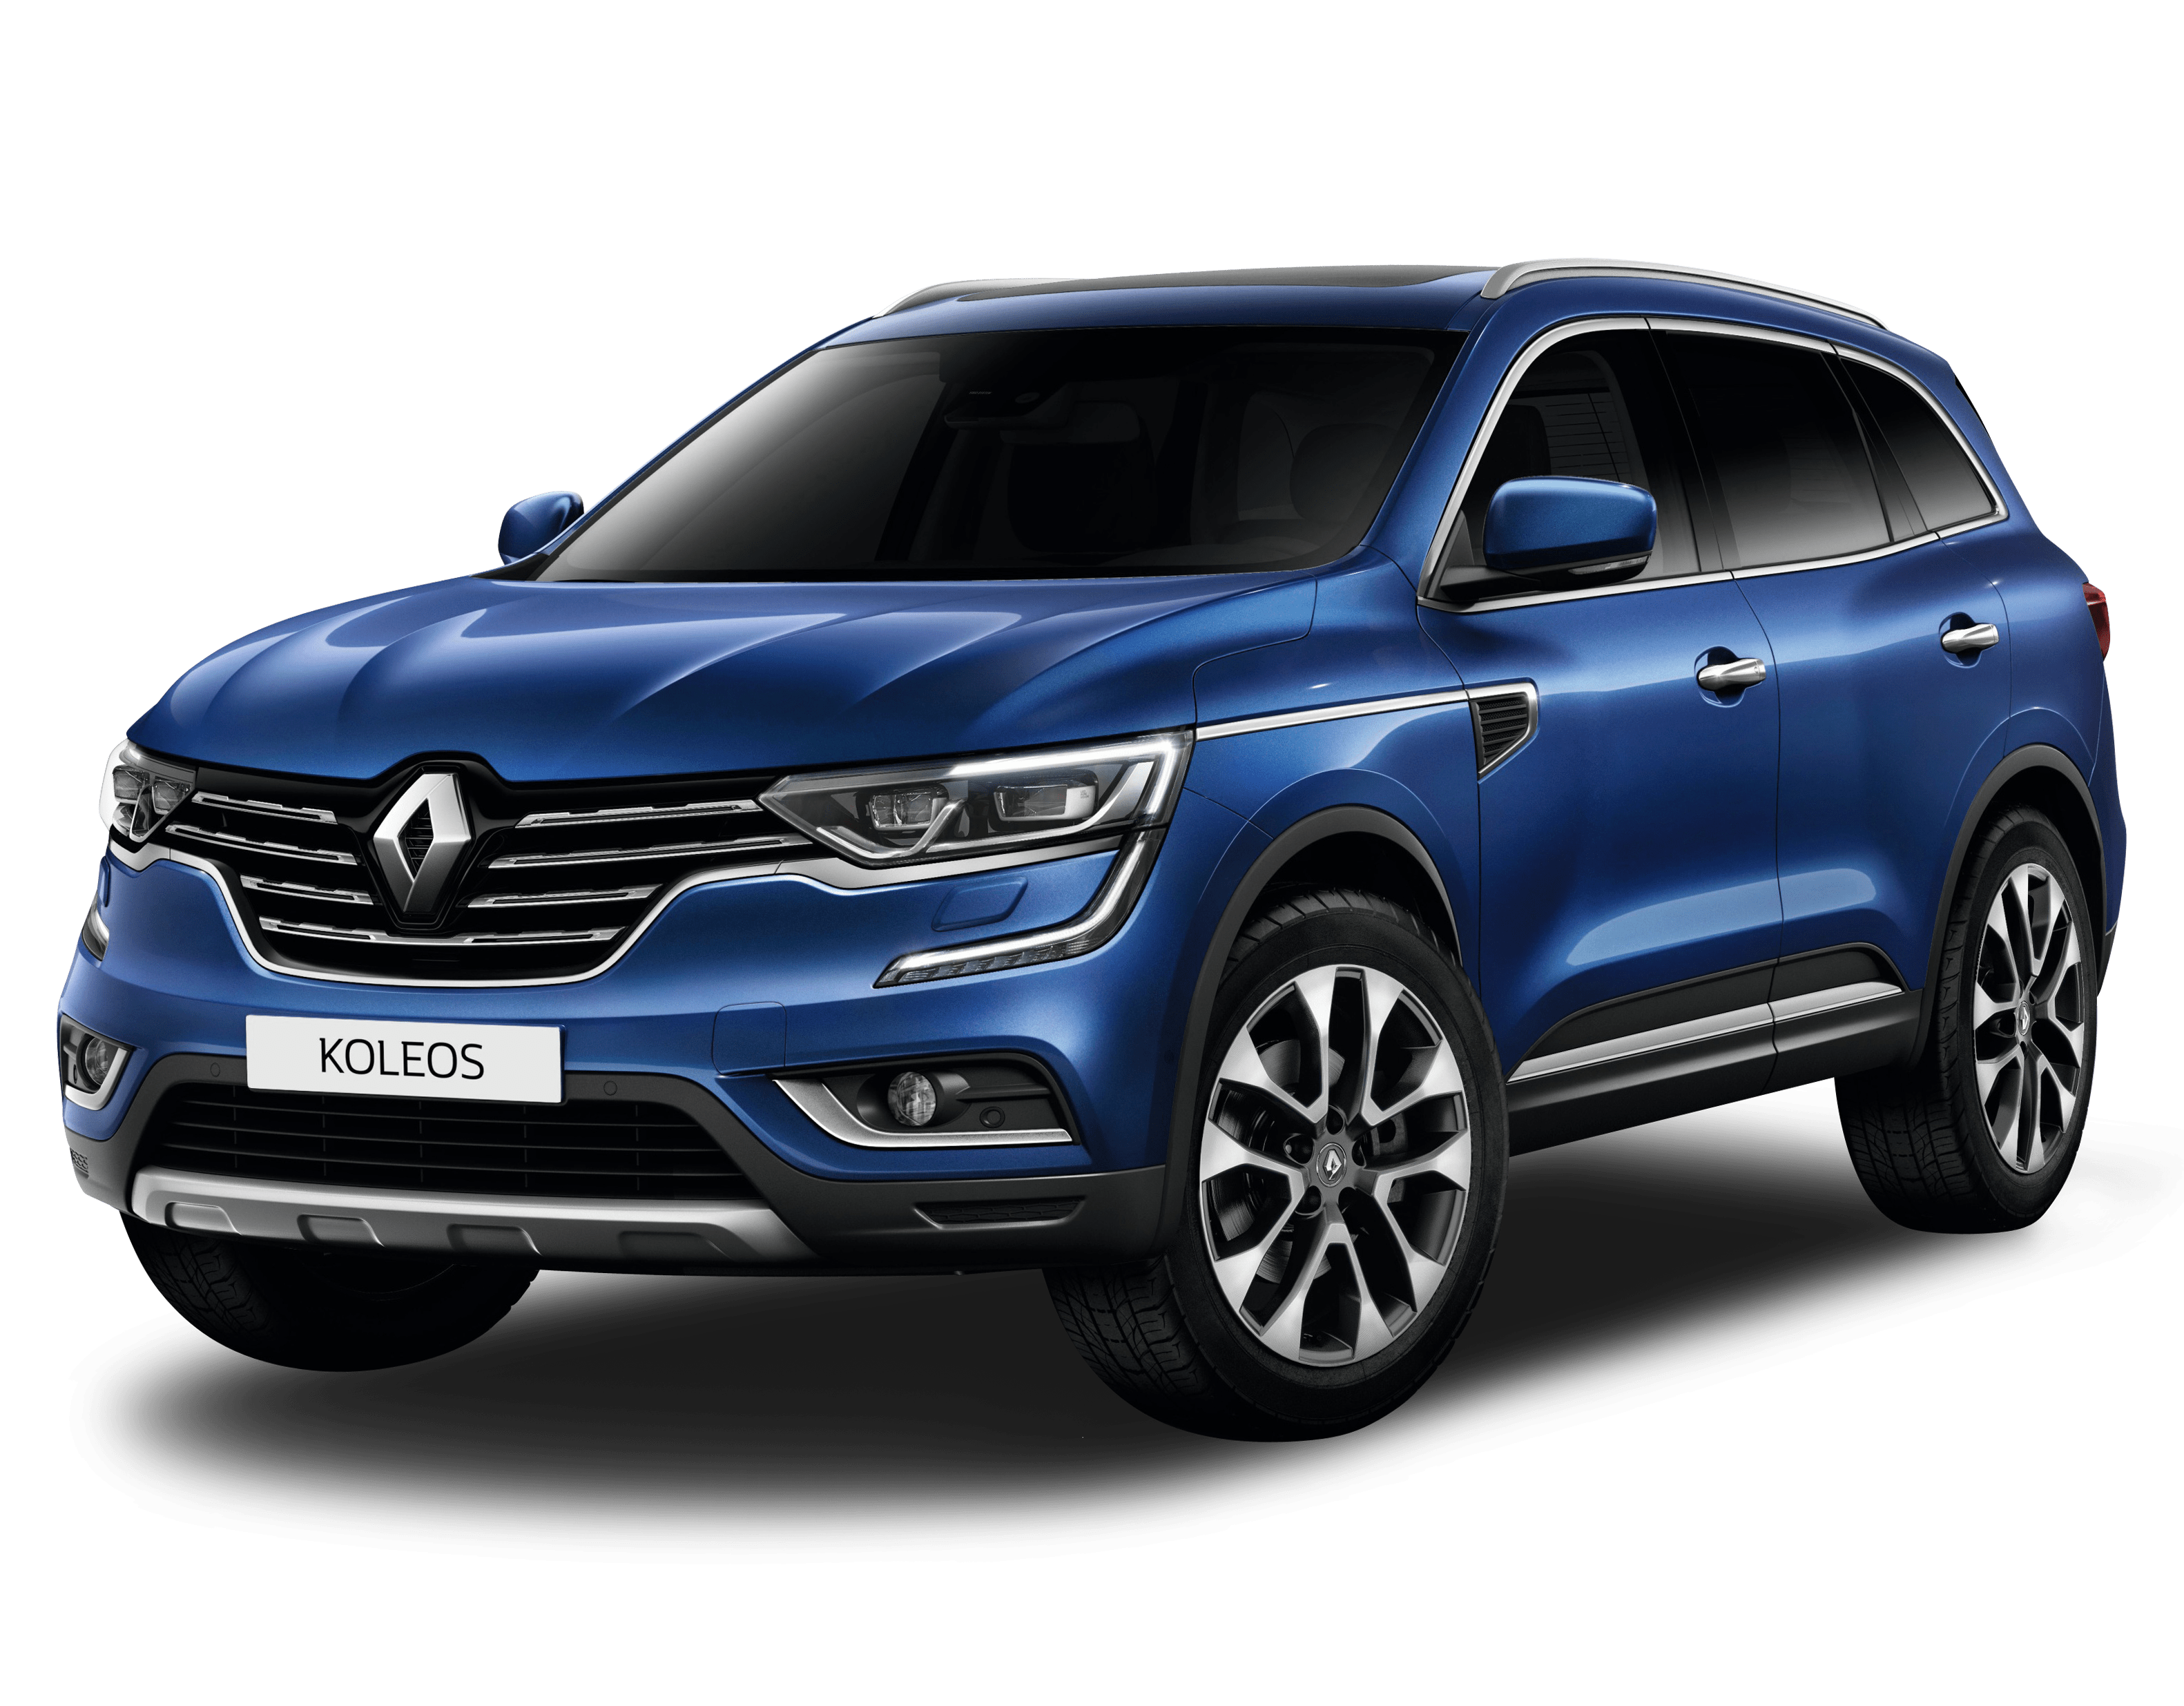 Renault Koleos Review Price For Sale Interior Colours Specs Carsguide